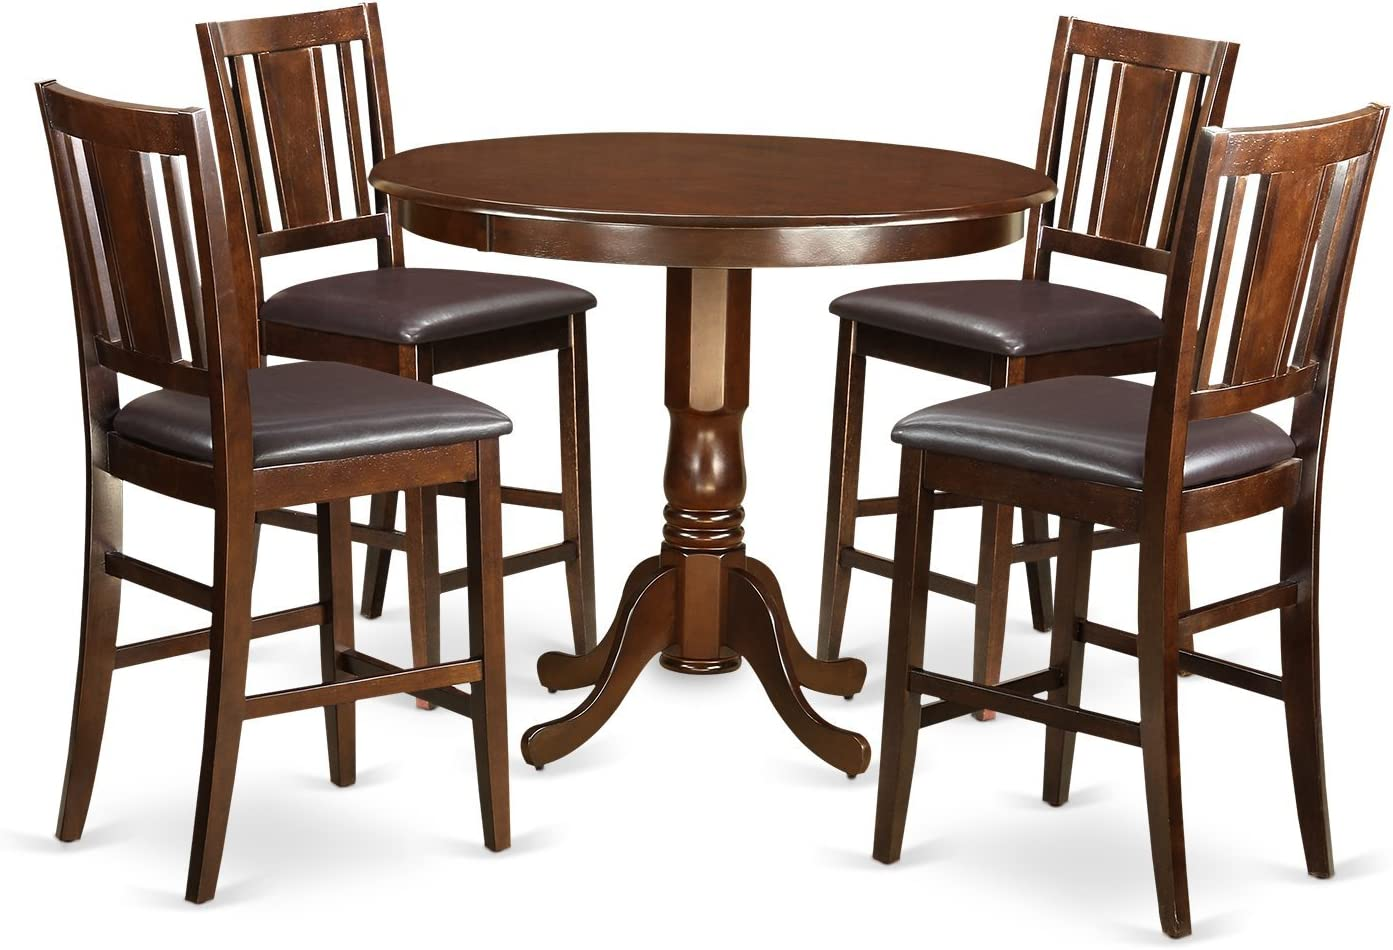 TRBU5-MAH-LC 5 PC counter height Table and chair set – high Table and 4 Dining Chairs.